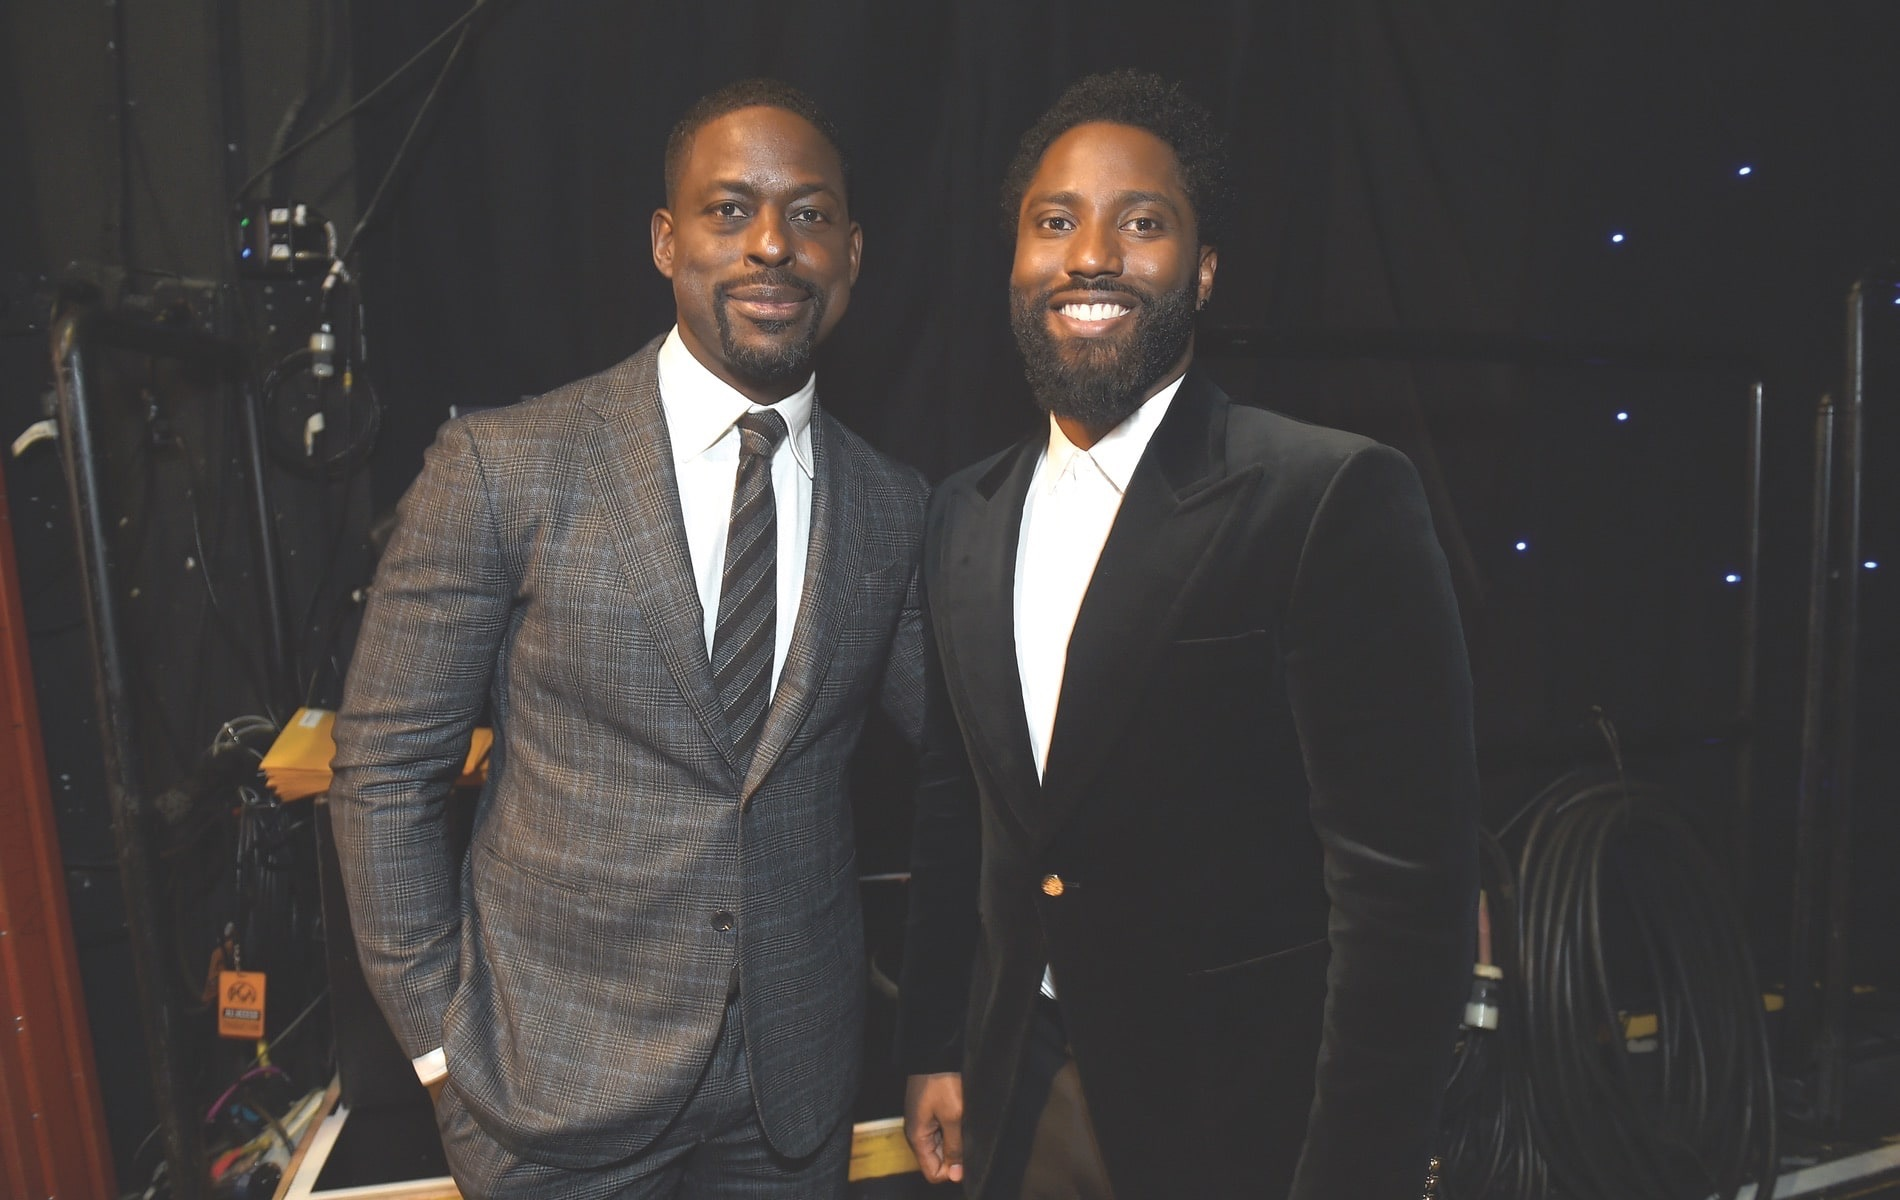 30th Annual Producers Guild Awards, Cadillac, Beverly Hilton, Beverly Hills, Sterling K. Brown, John David Washington